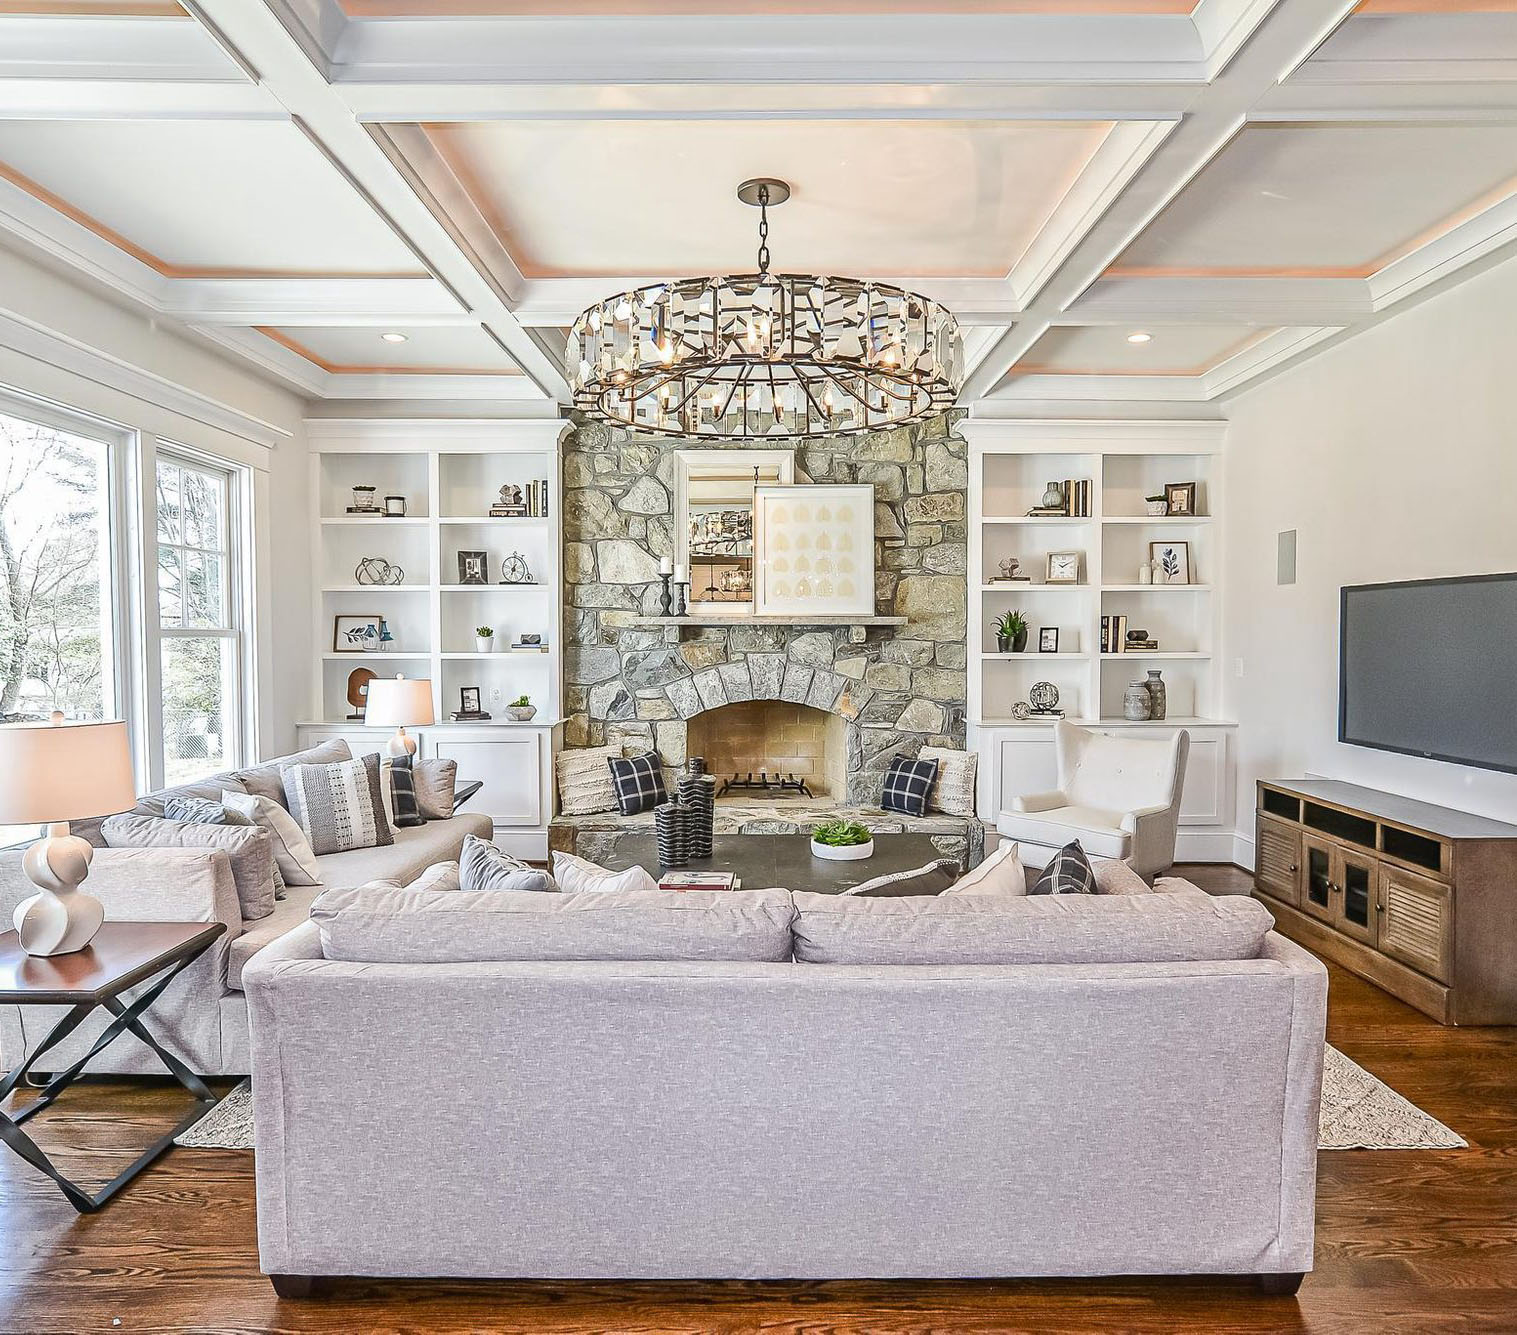 Real stone fireplace surround which has been recessed into the wall surrounded by built ins.